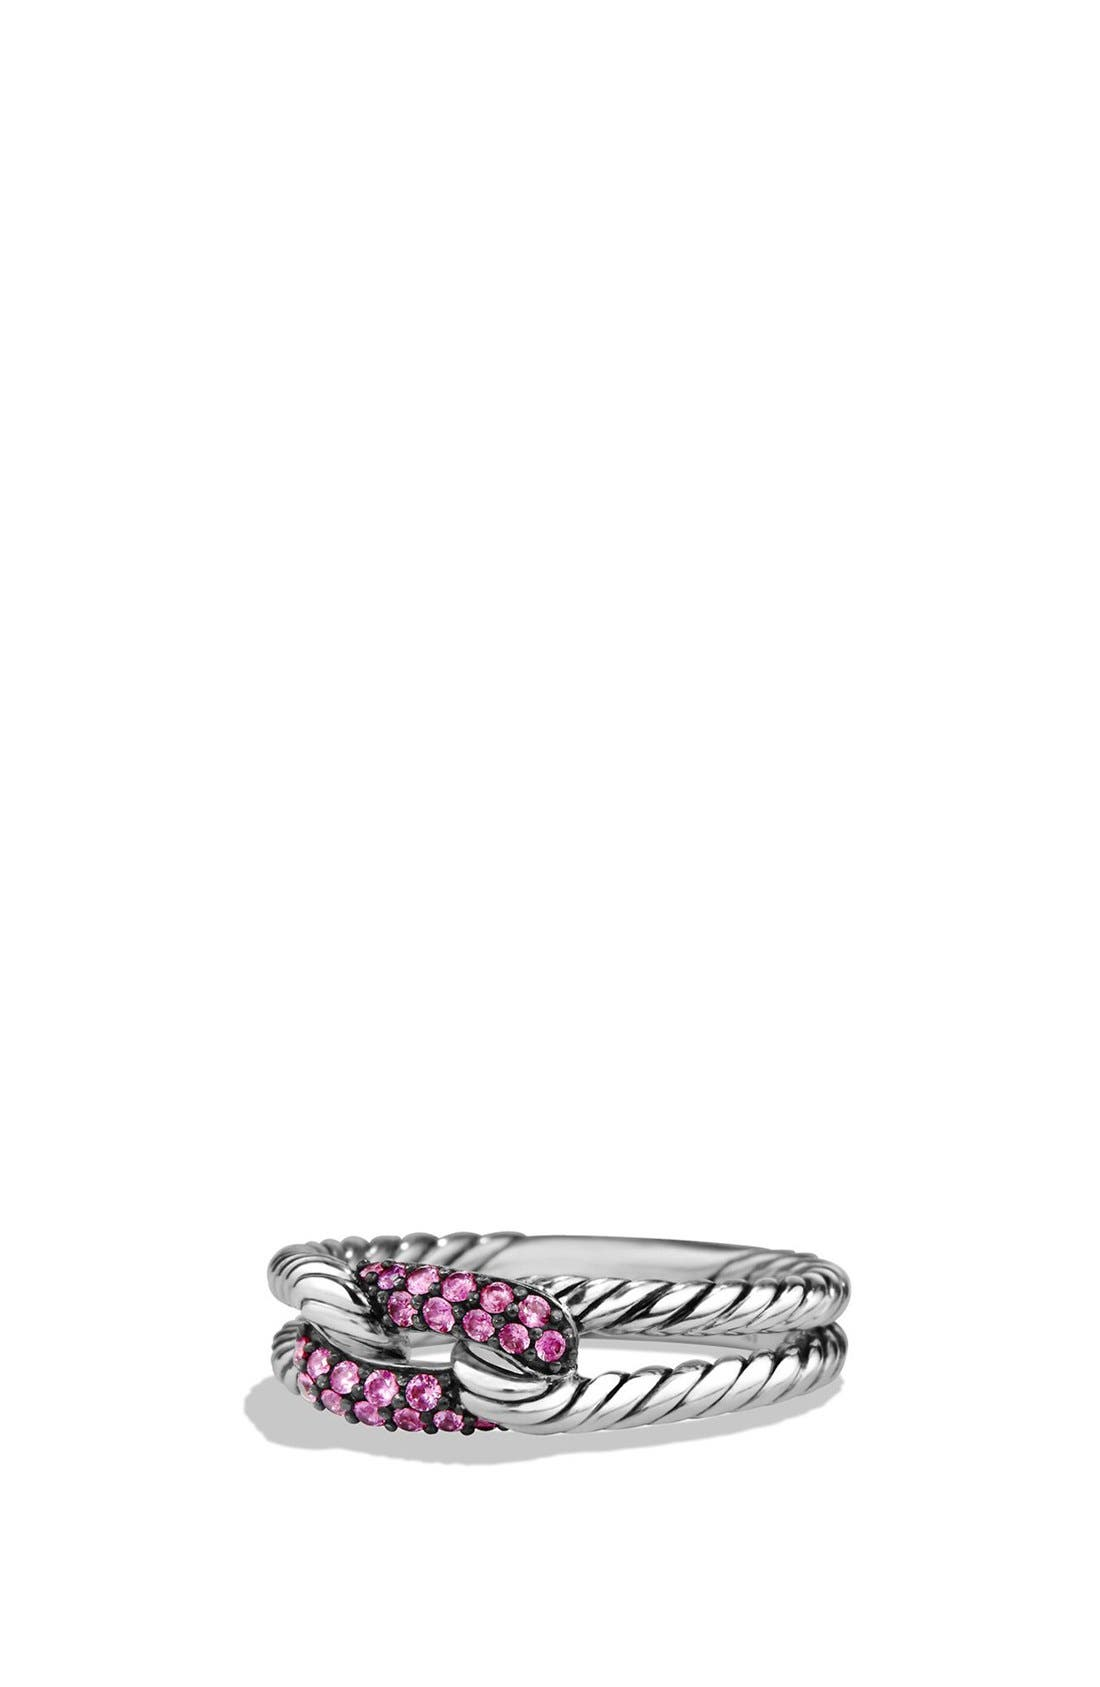 DAVID YURMAN 'Petite Pavé' Loop Ring with Sapphires